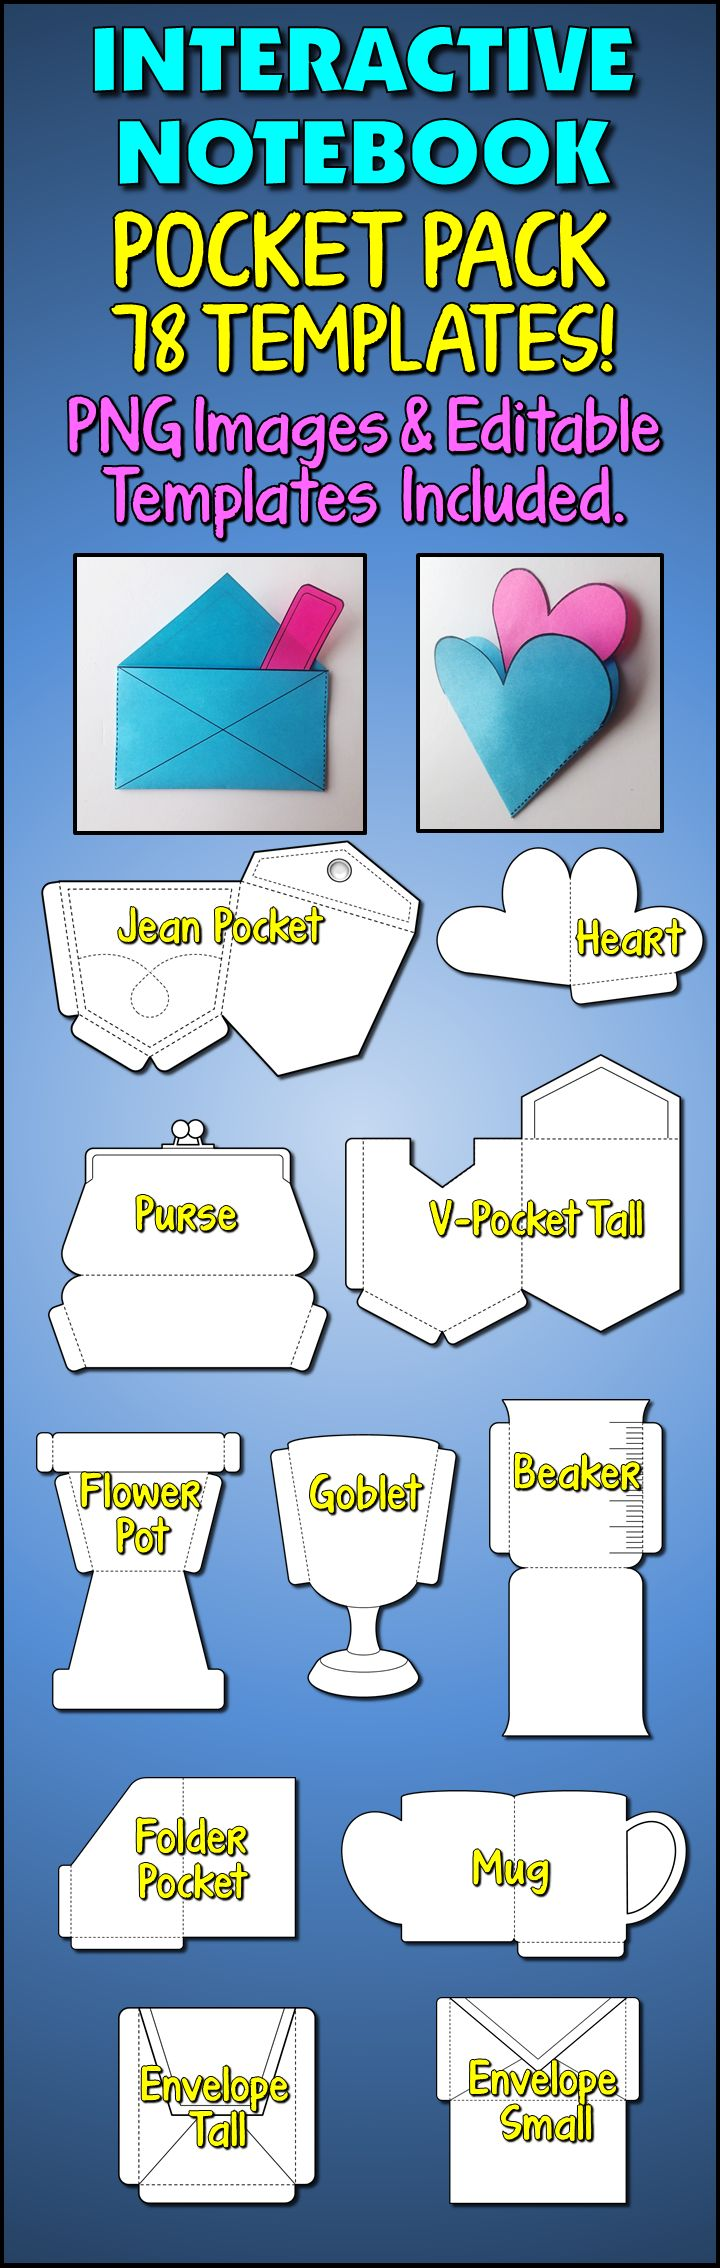 ADD A NEW ELEMENT TO YOUR BULLETIN BOARD:  I made the these 78 Pocket Templates for interactive notebooks, but they work great on bulletin boards as well!   They will help add an interesting and interactive element to your bulletin board. Pockets are of various shapes and sizes: envelopes, folders, V-pockets, slanted pockets as well as fun shapes (beaker, mug, heart, flower pot, purse, jean pocket).  As a bonus I have created 52 Inserts for you to mix and match with your pockets.